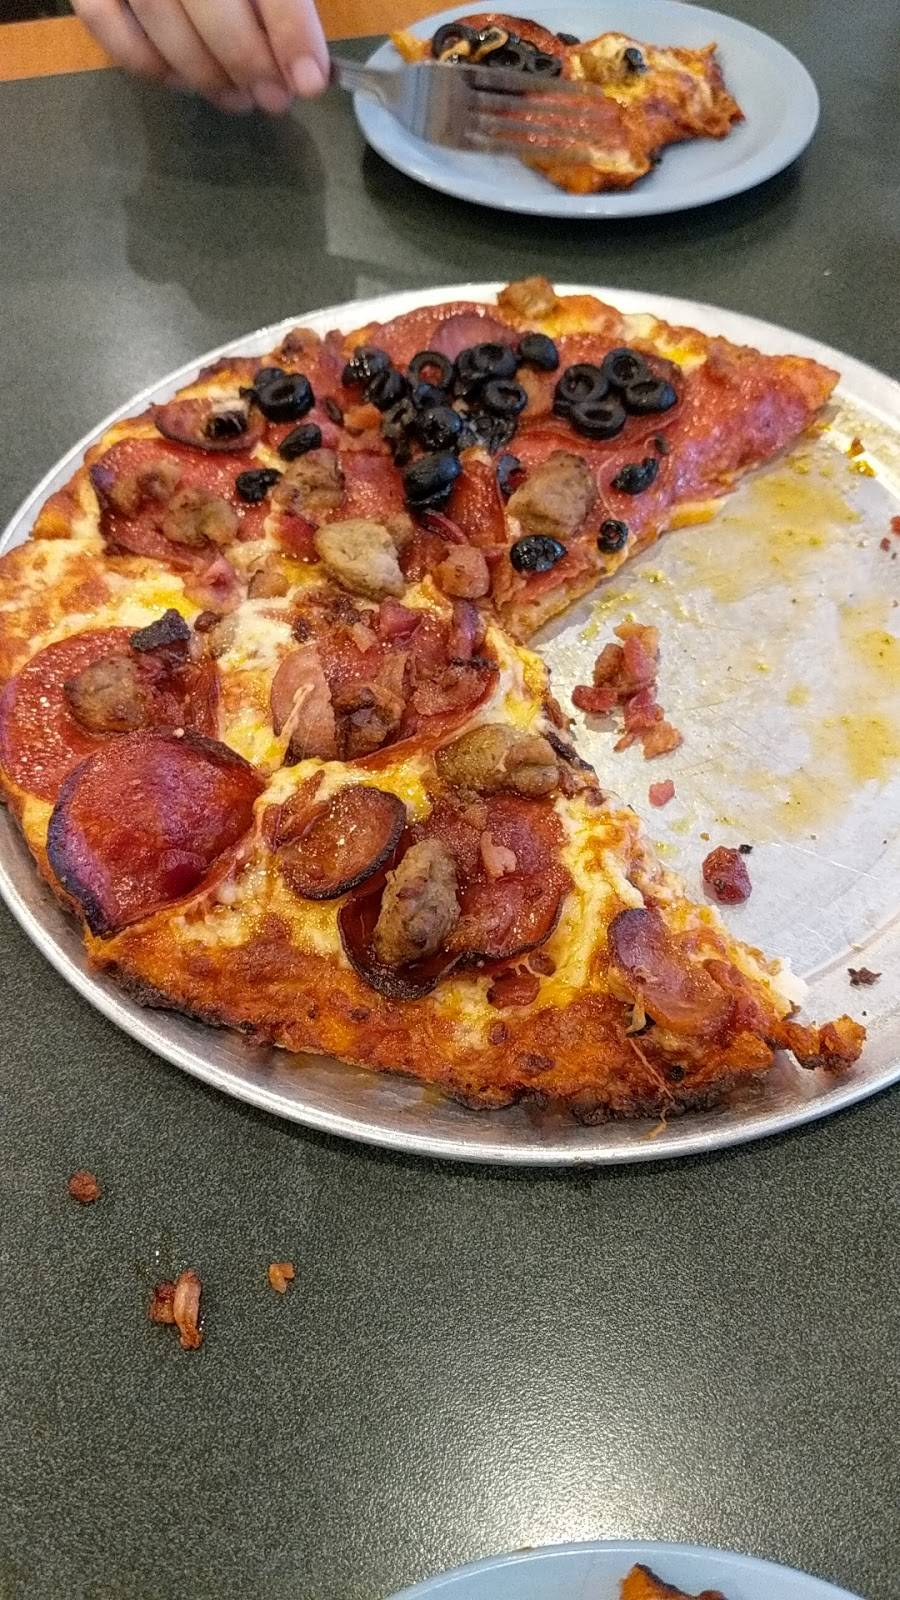 Round Table Pizza Meal Delivery 302 E Walker St Orland Ca 95963 Usa